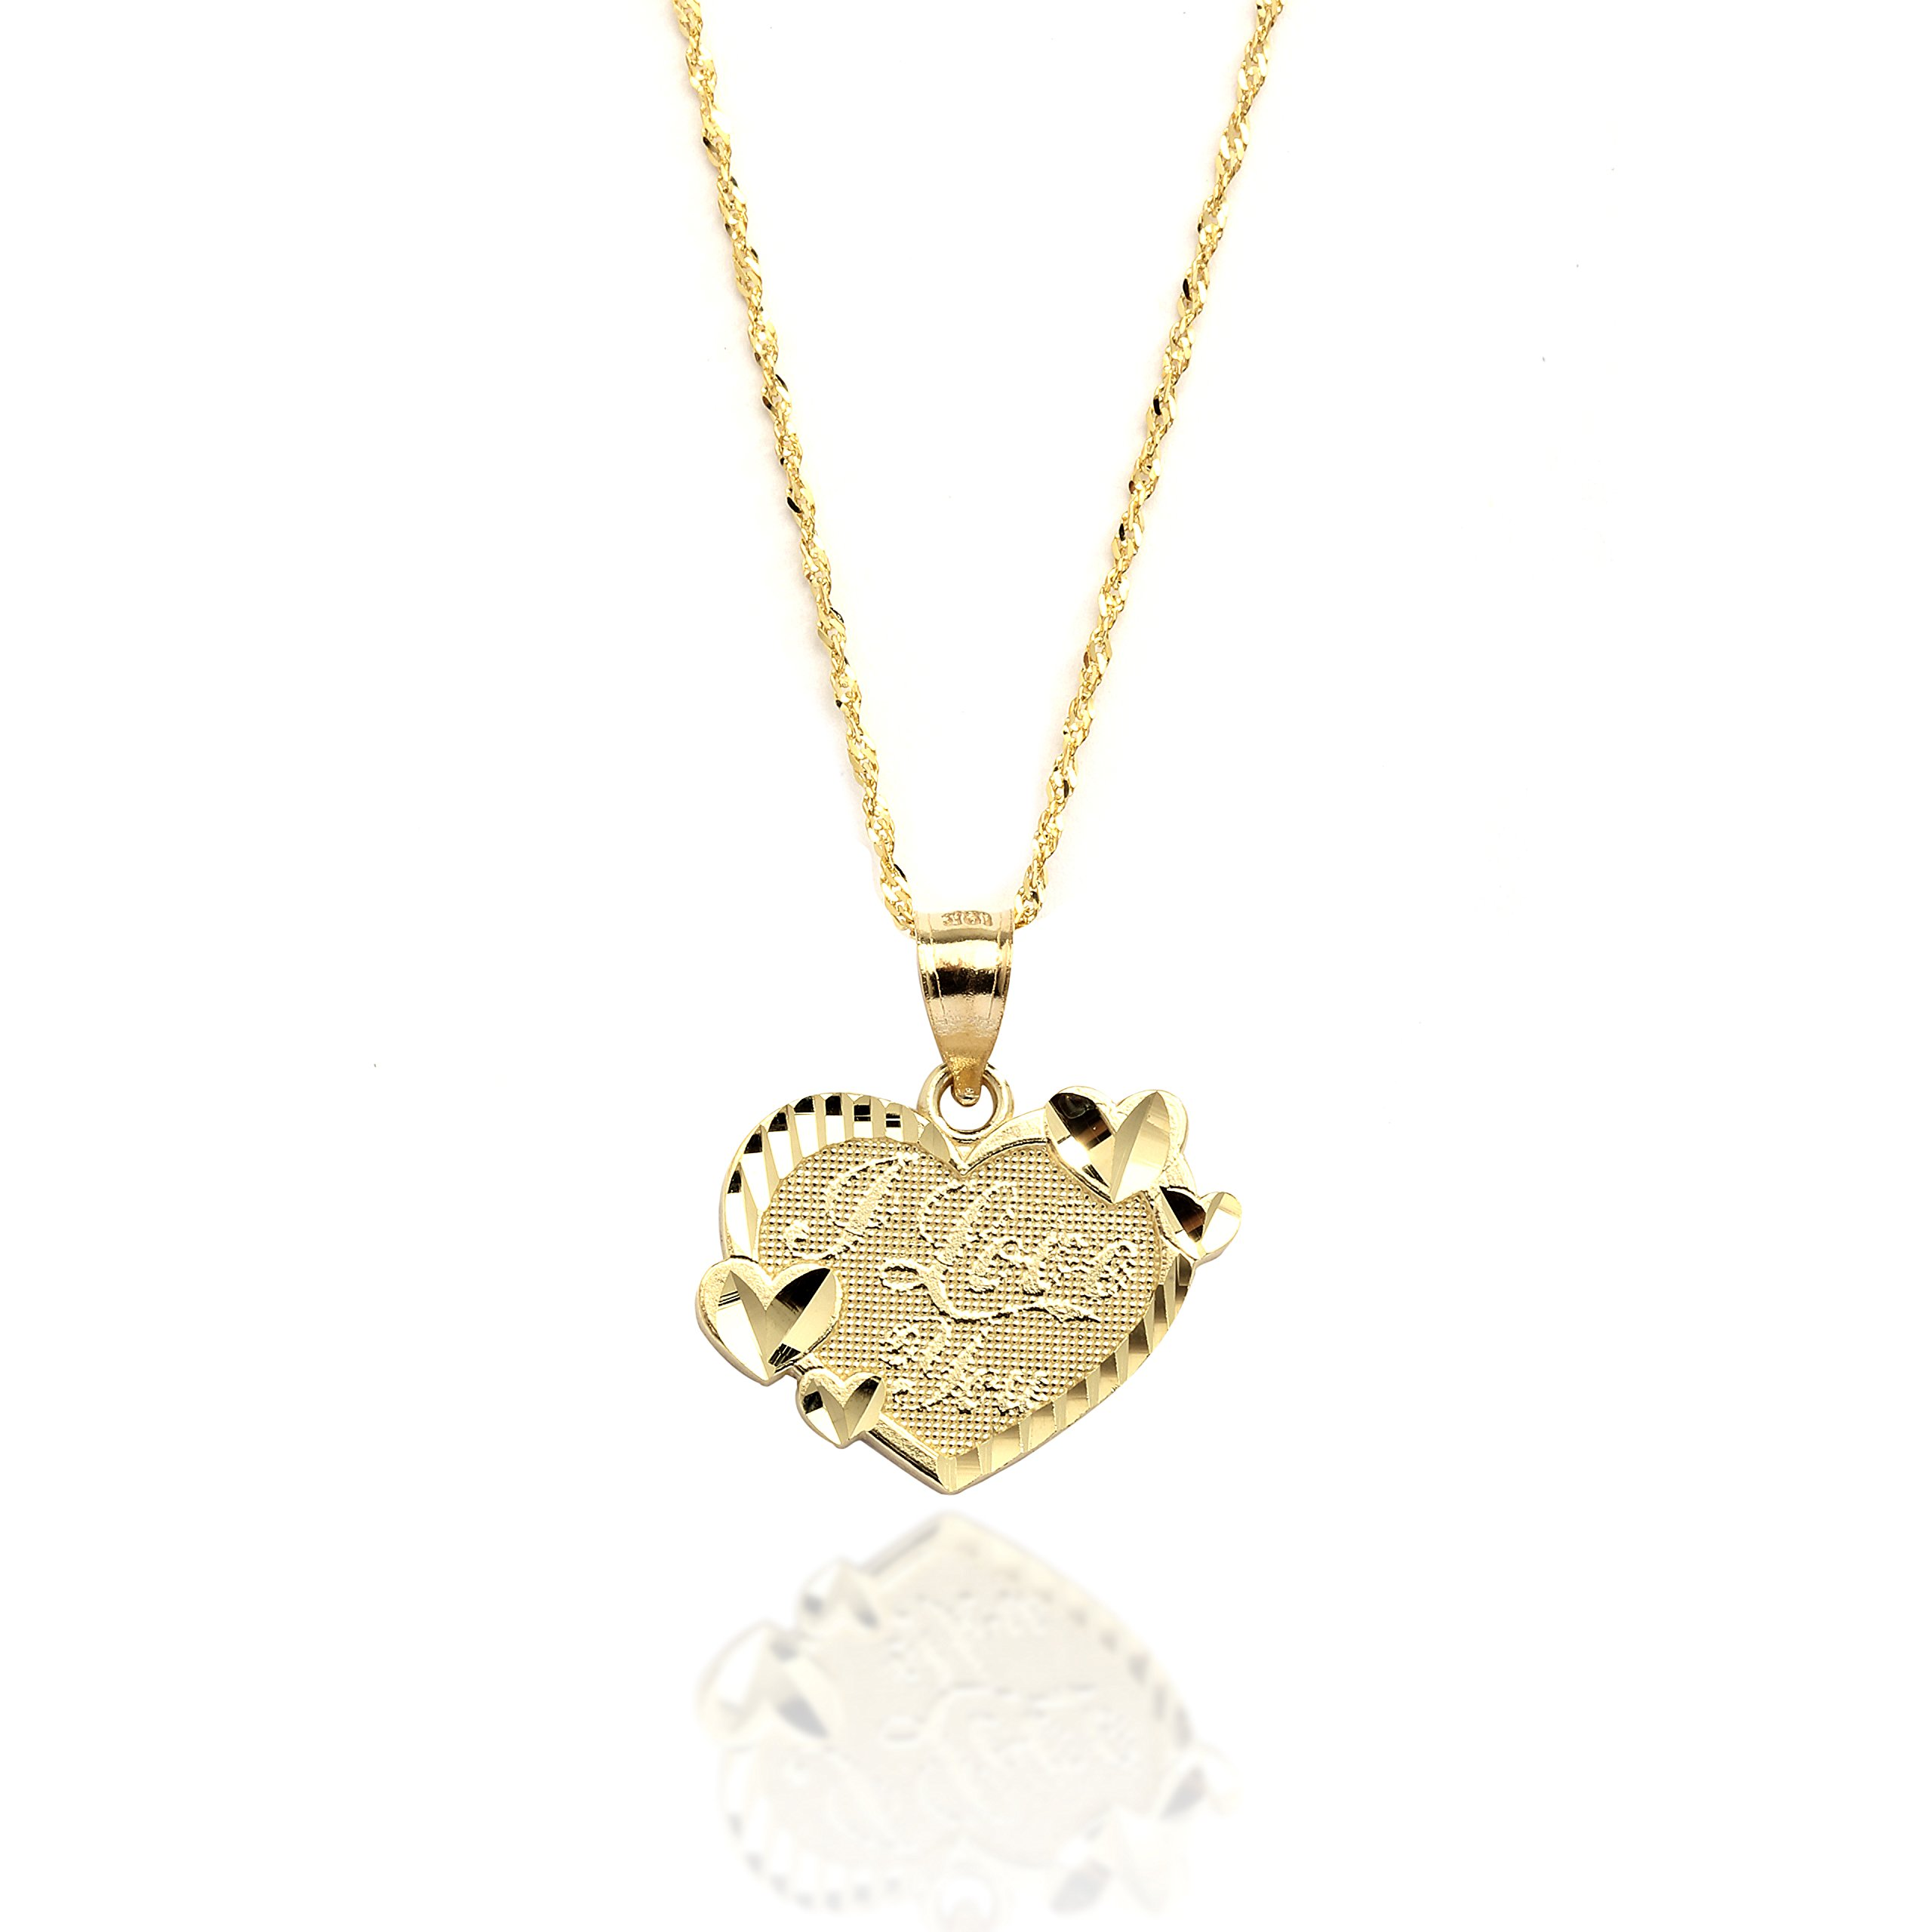 18'' 10k Yellow Gold I Love You Heart Pendant Necklace with Singapore Chain for Women and Girls